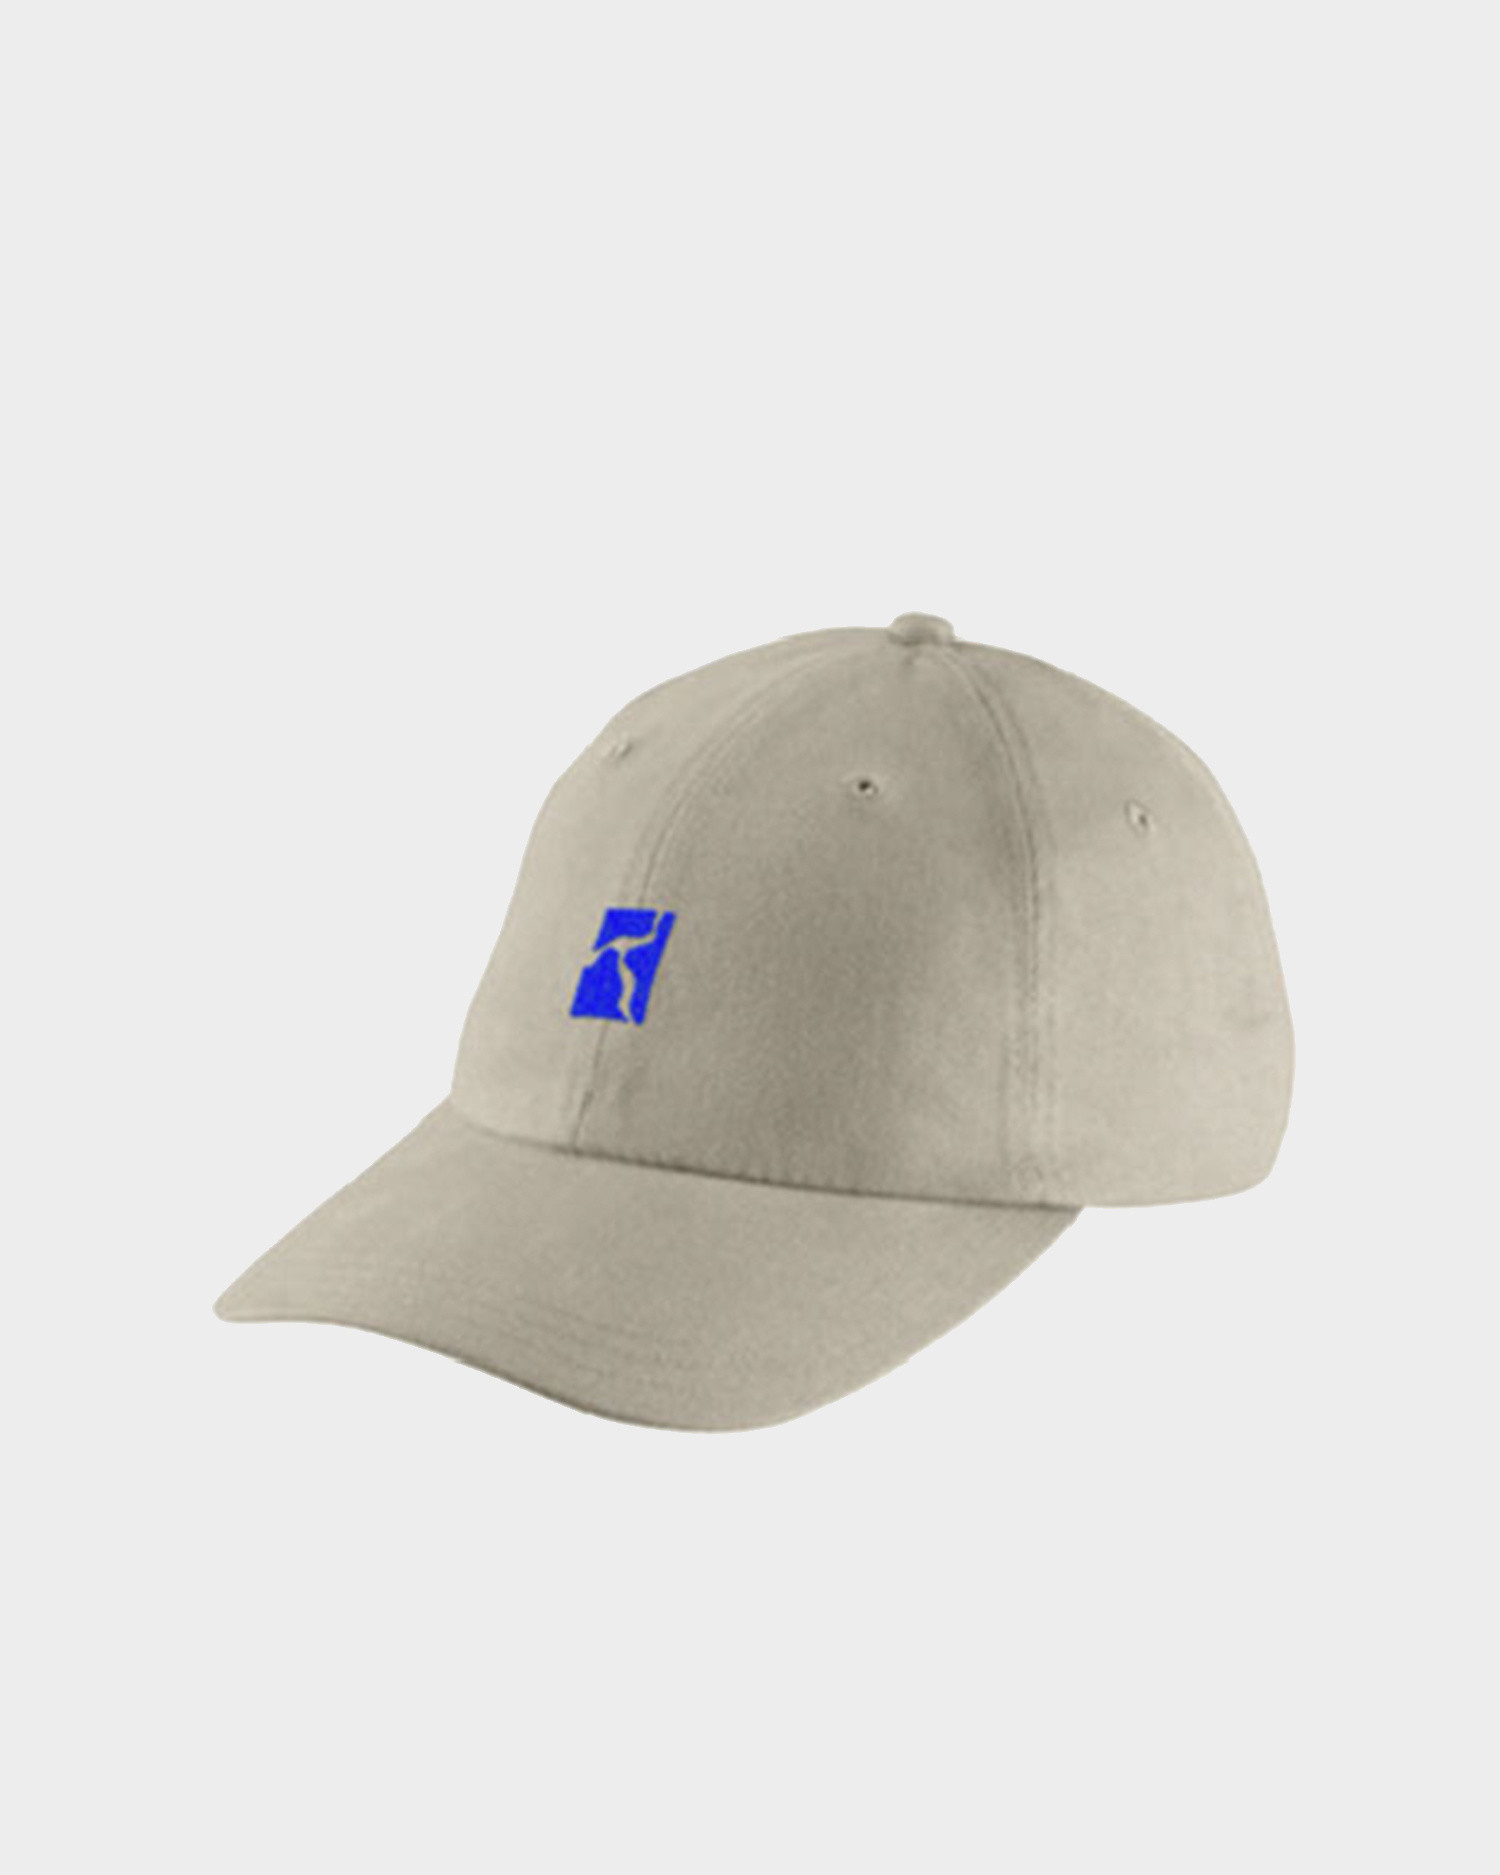 Poetic Collective Cap Beige And Blue